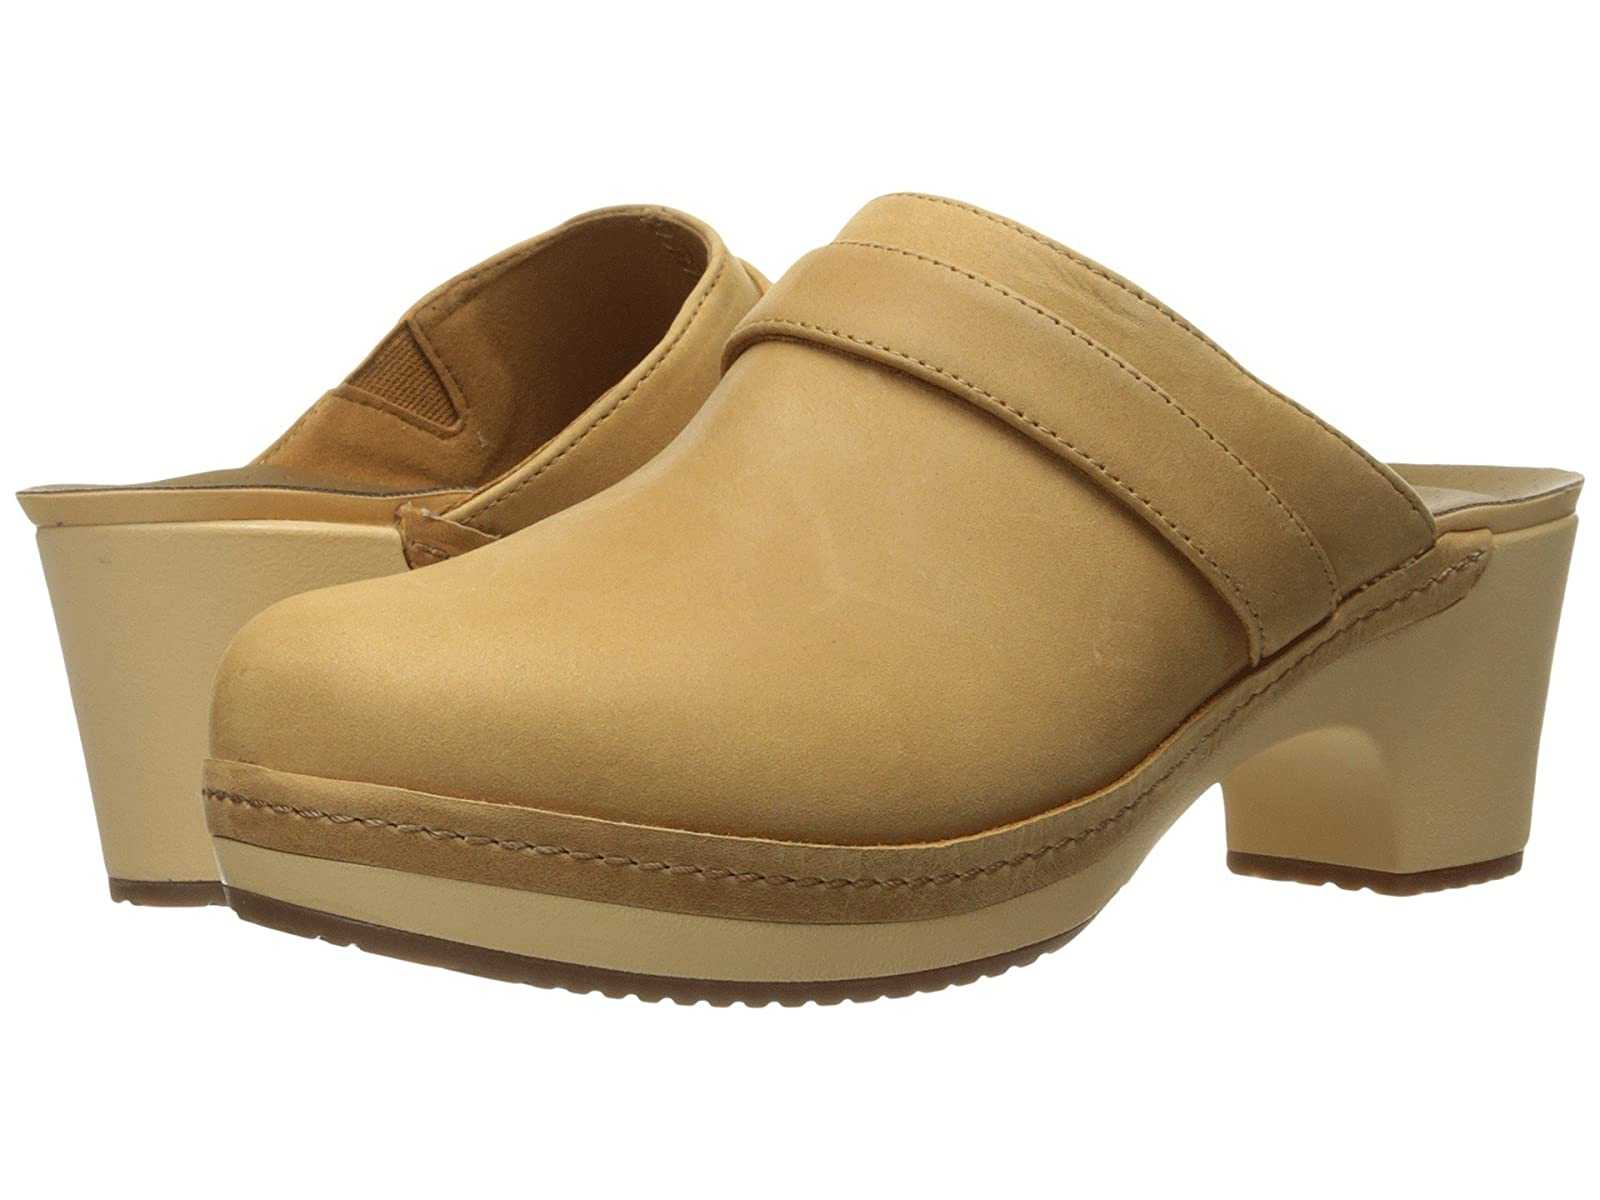 Crocs Sarah Leather ClogCheap and distinctive eye-catching shoes